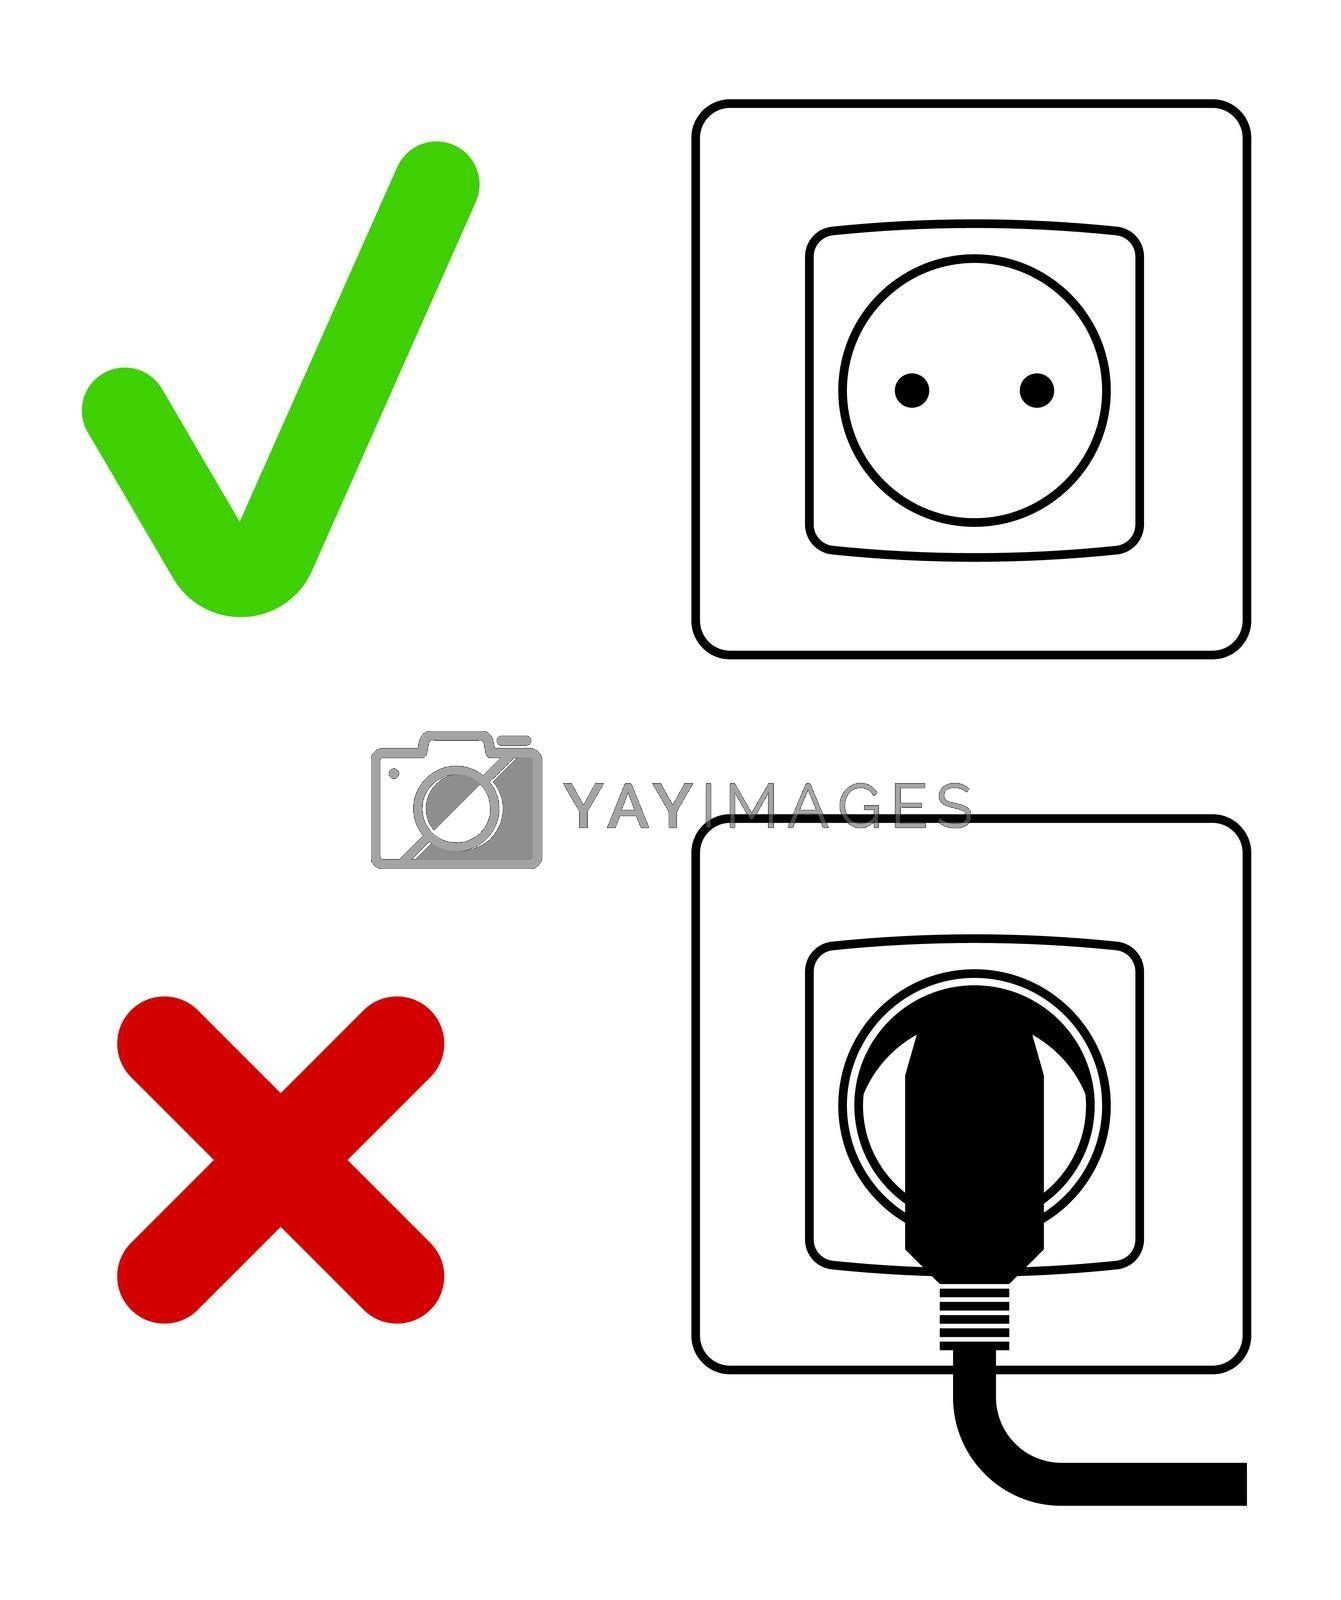 Electric socket with a plug. Electrical appliances left unattended. Saving energy, caring for nature. Isolated vector on white background